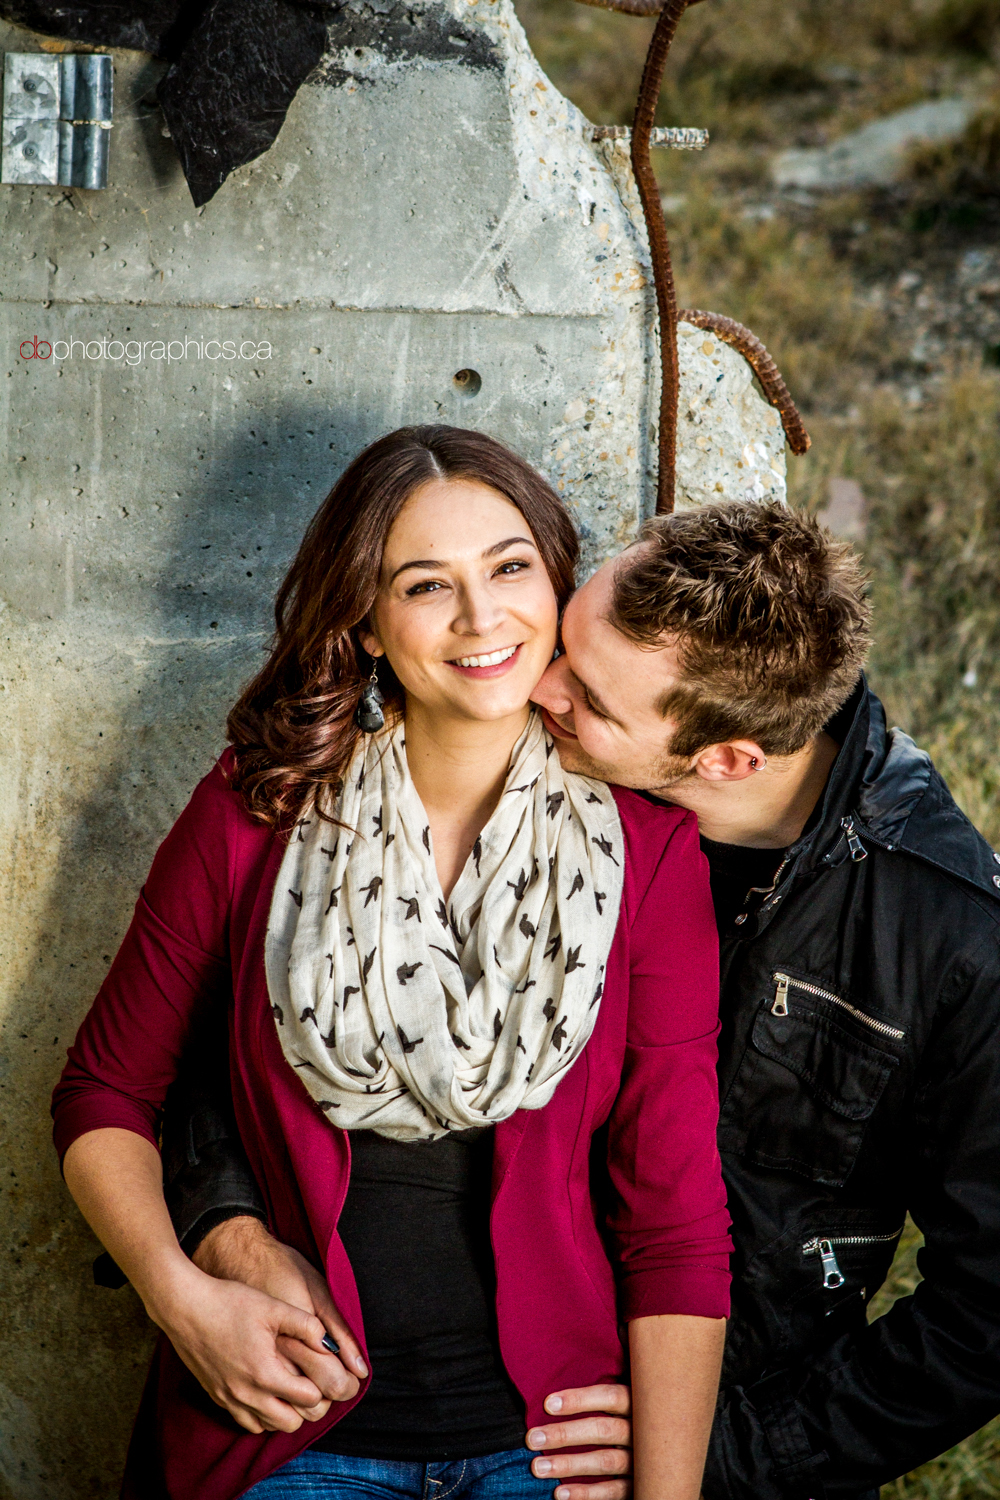 Gaea & Kurt - Engagement Session - 20131020 - 0049.jpg